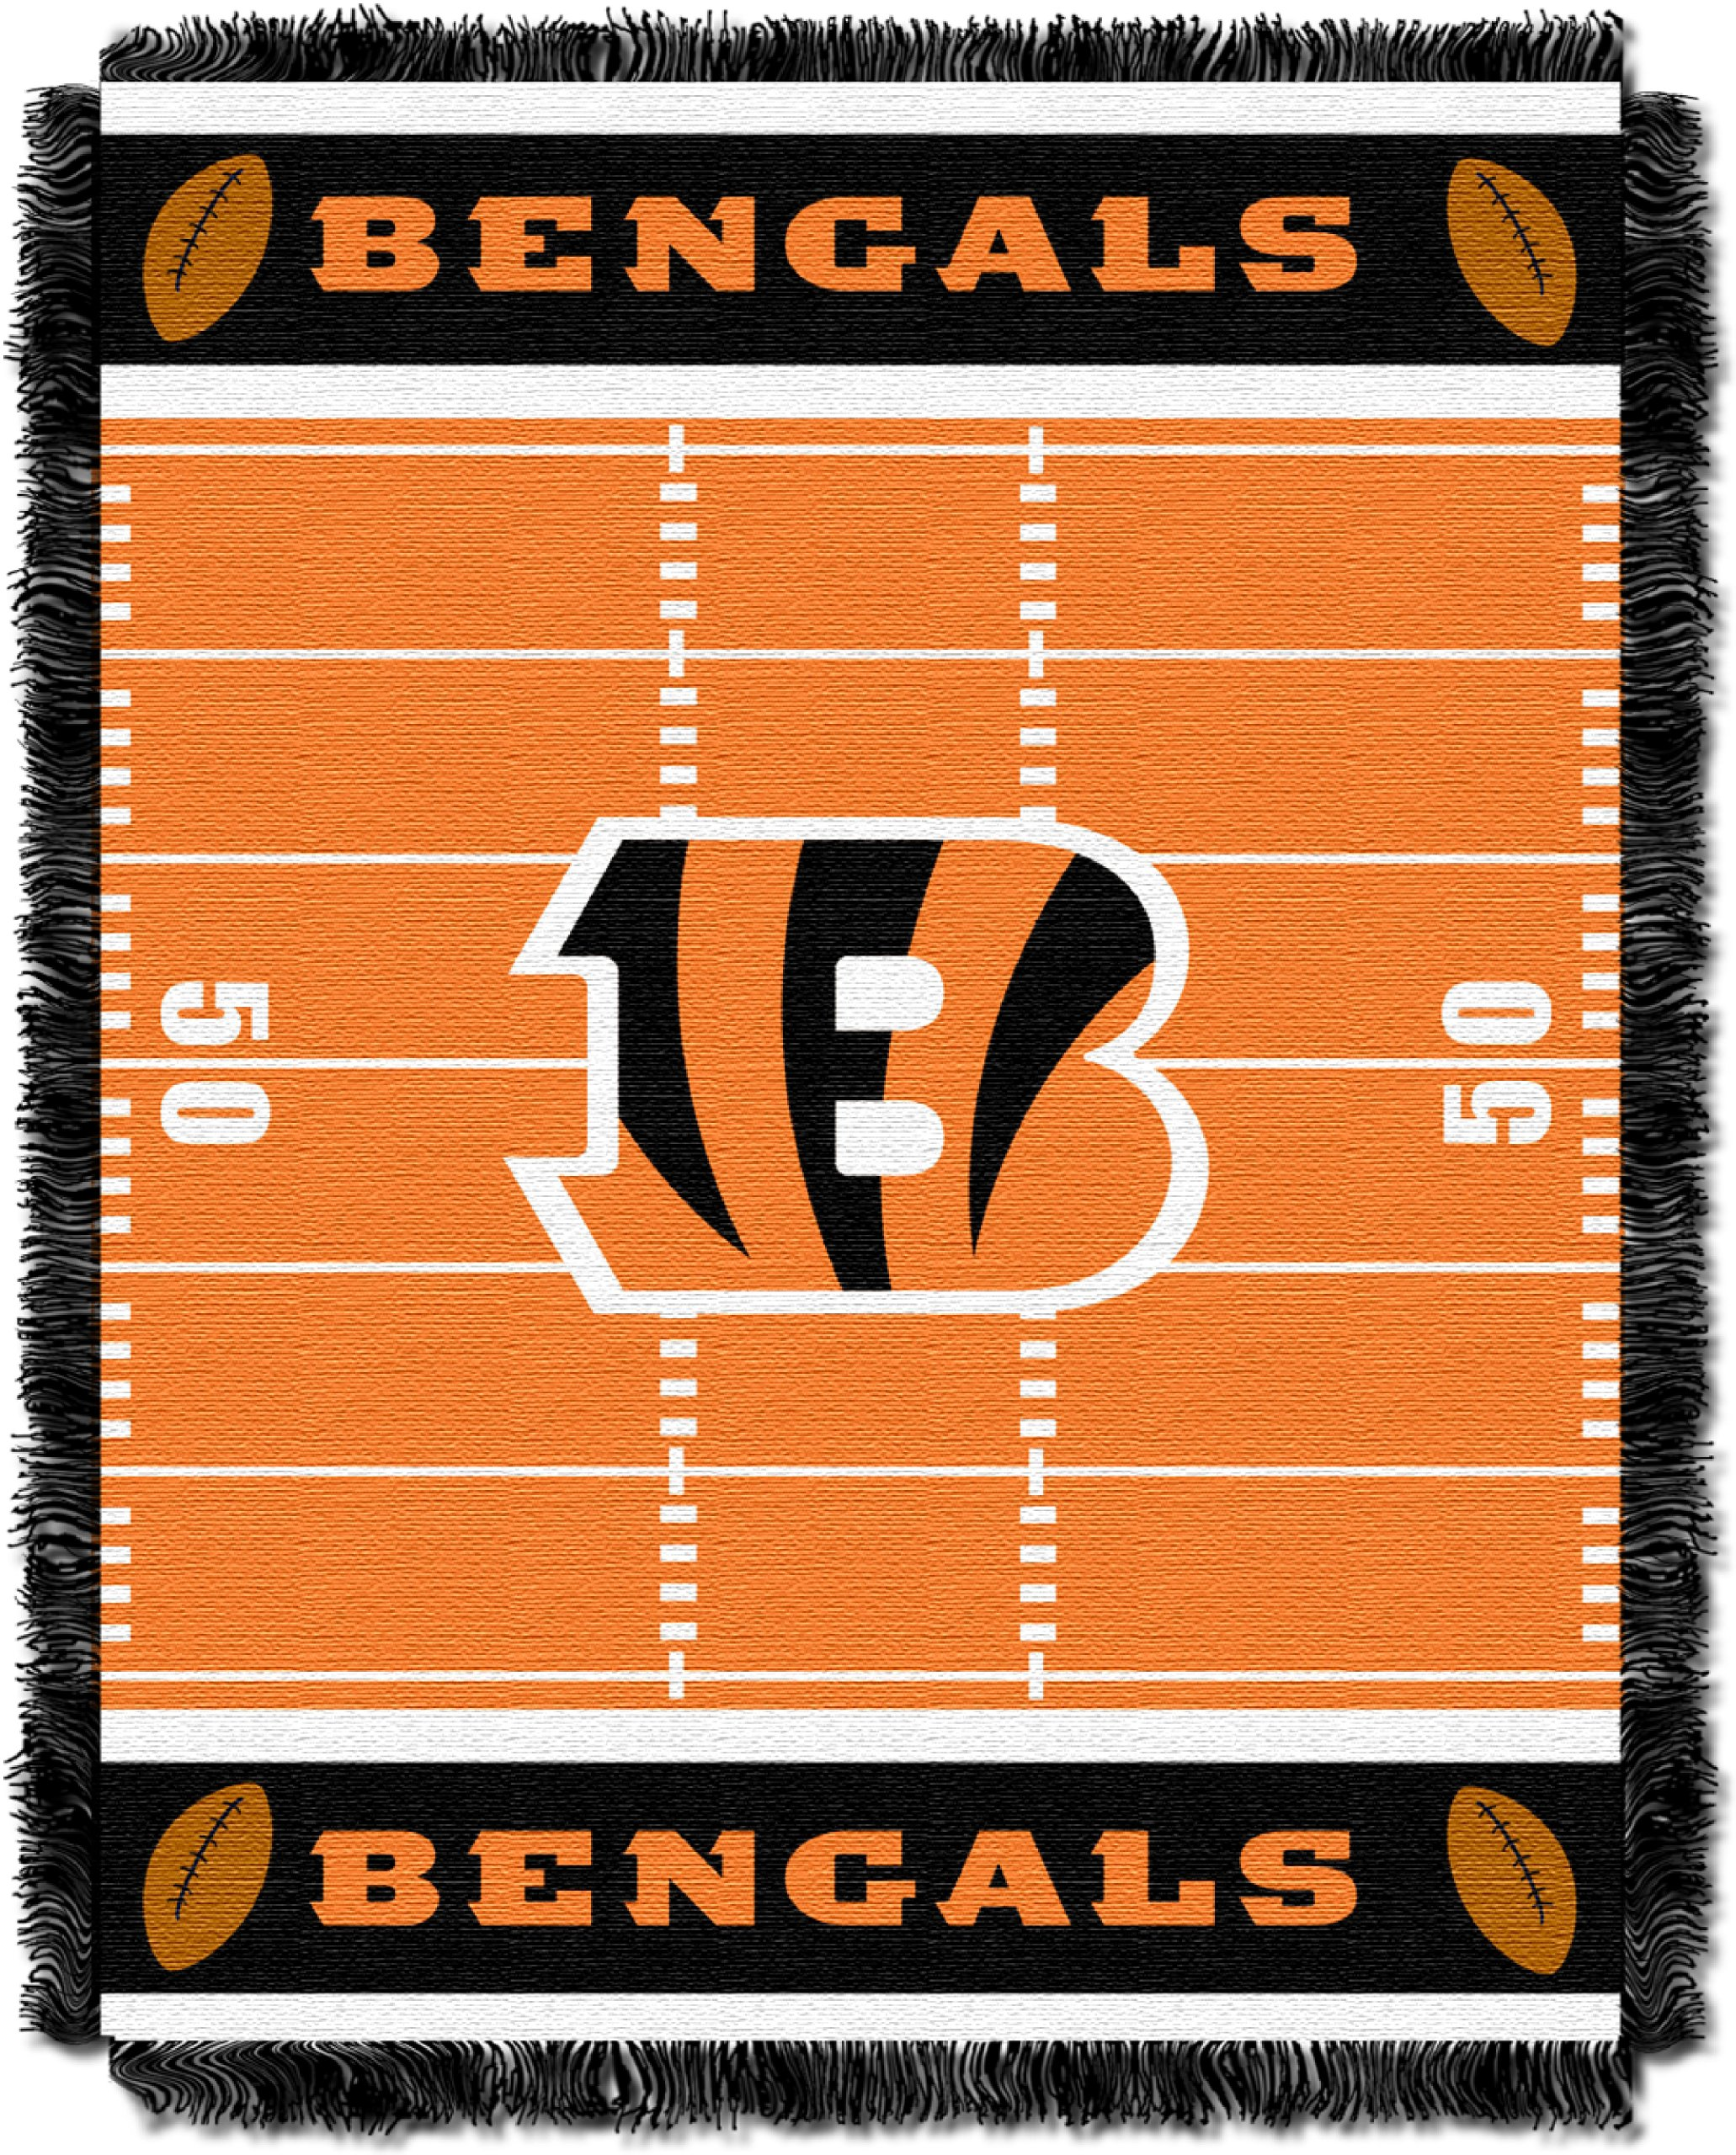 The Northwest Company Officially Licensed NFL Cincinnati Bengals Field Bear Woven Jacquard Baby Throw Blanket, 36'' x 46'', Multi Color by The Northwest Company